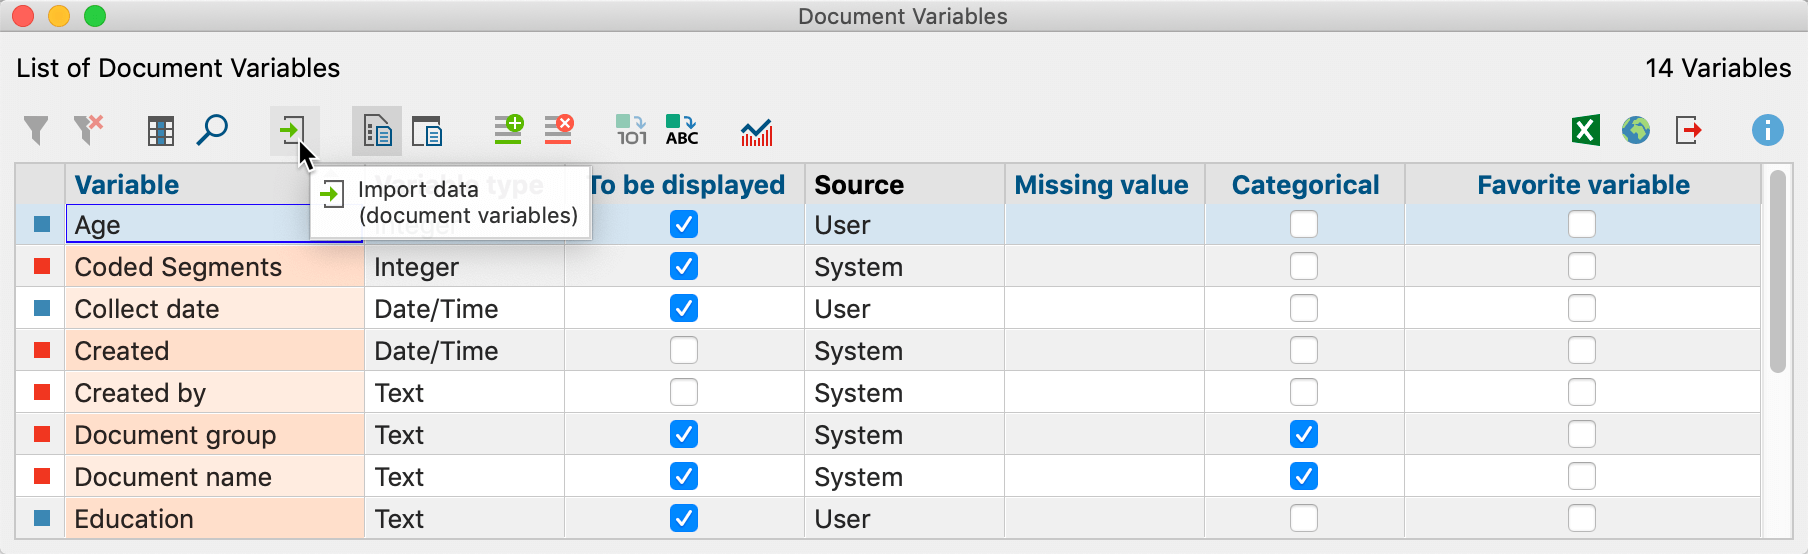 Icon for importing document variables